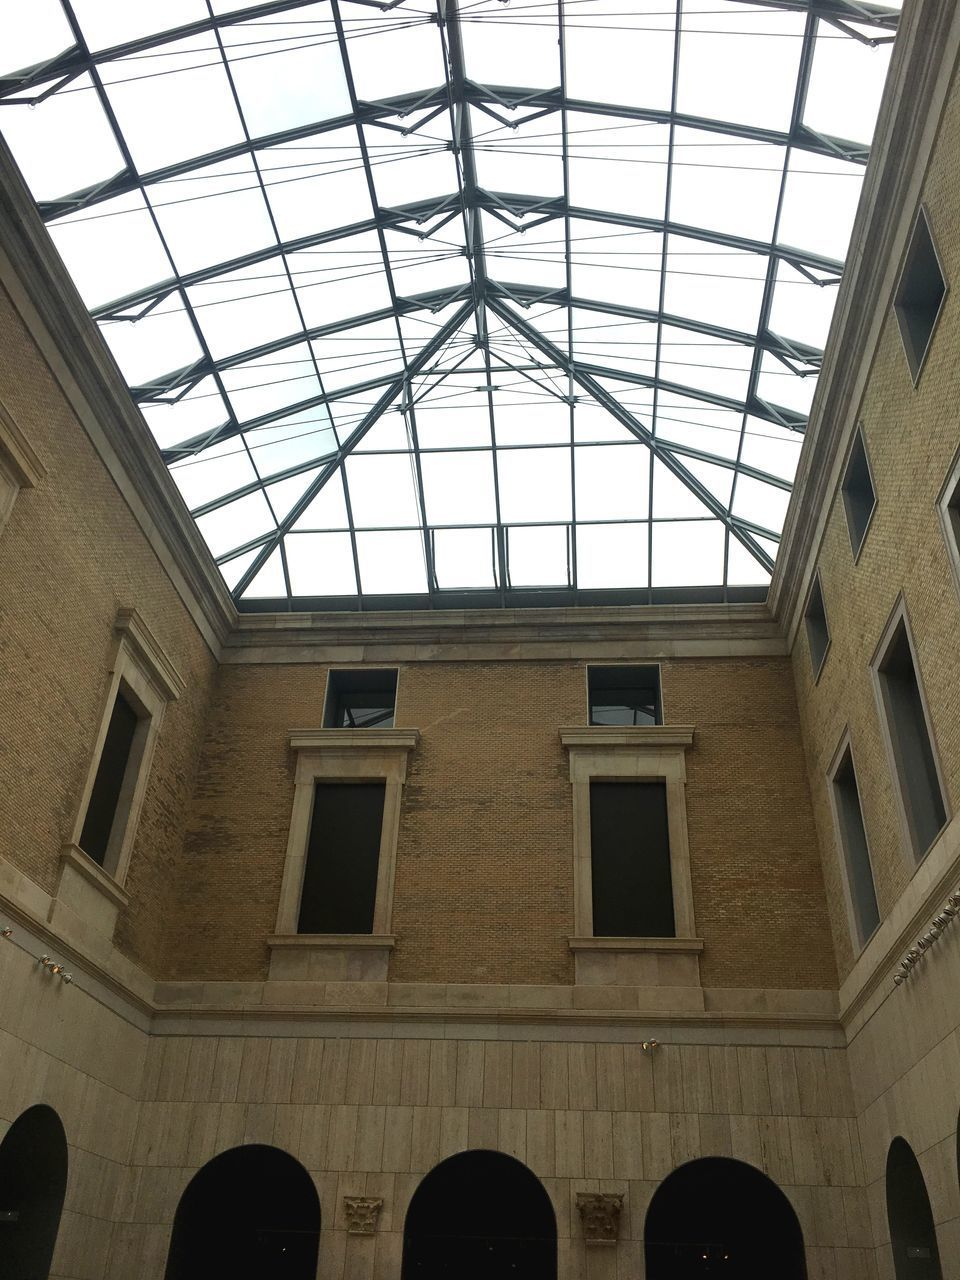 architecture, low angle view, built structure, window, indoors, arch, no people, ceiling, day, glass - material, building, skylight, travel destinations, pattern, history, transparent, the past, nature